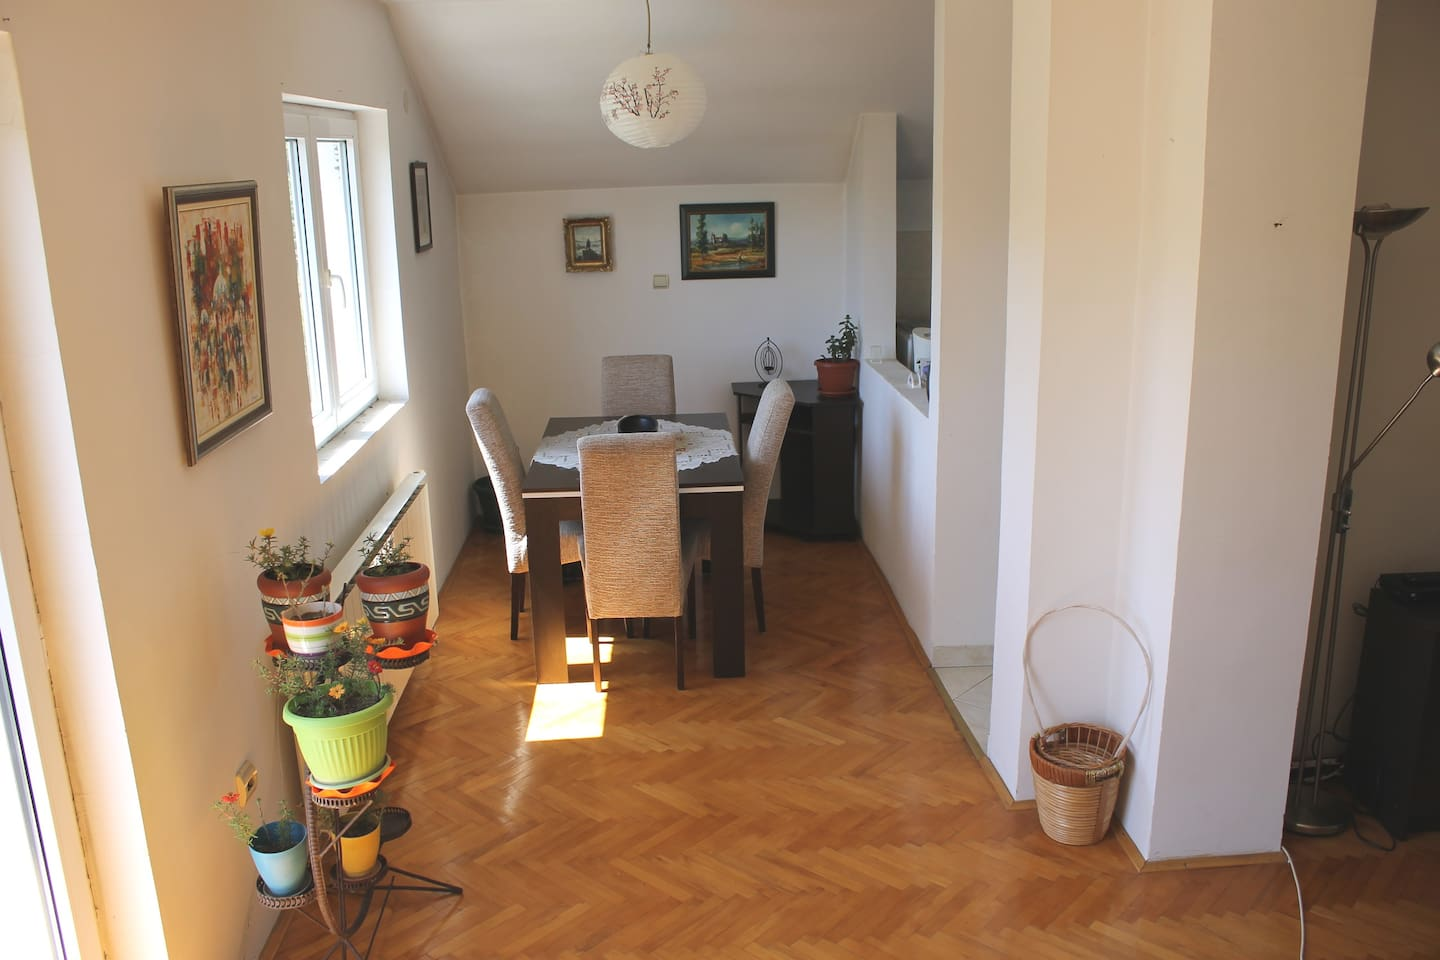 PLEASE LET US TELL YOU A STORY OF OUR WONDERFUL APARTMENT. The meals you prepared in our kitchen will be even more tasty in such a lovely dinning room.